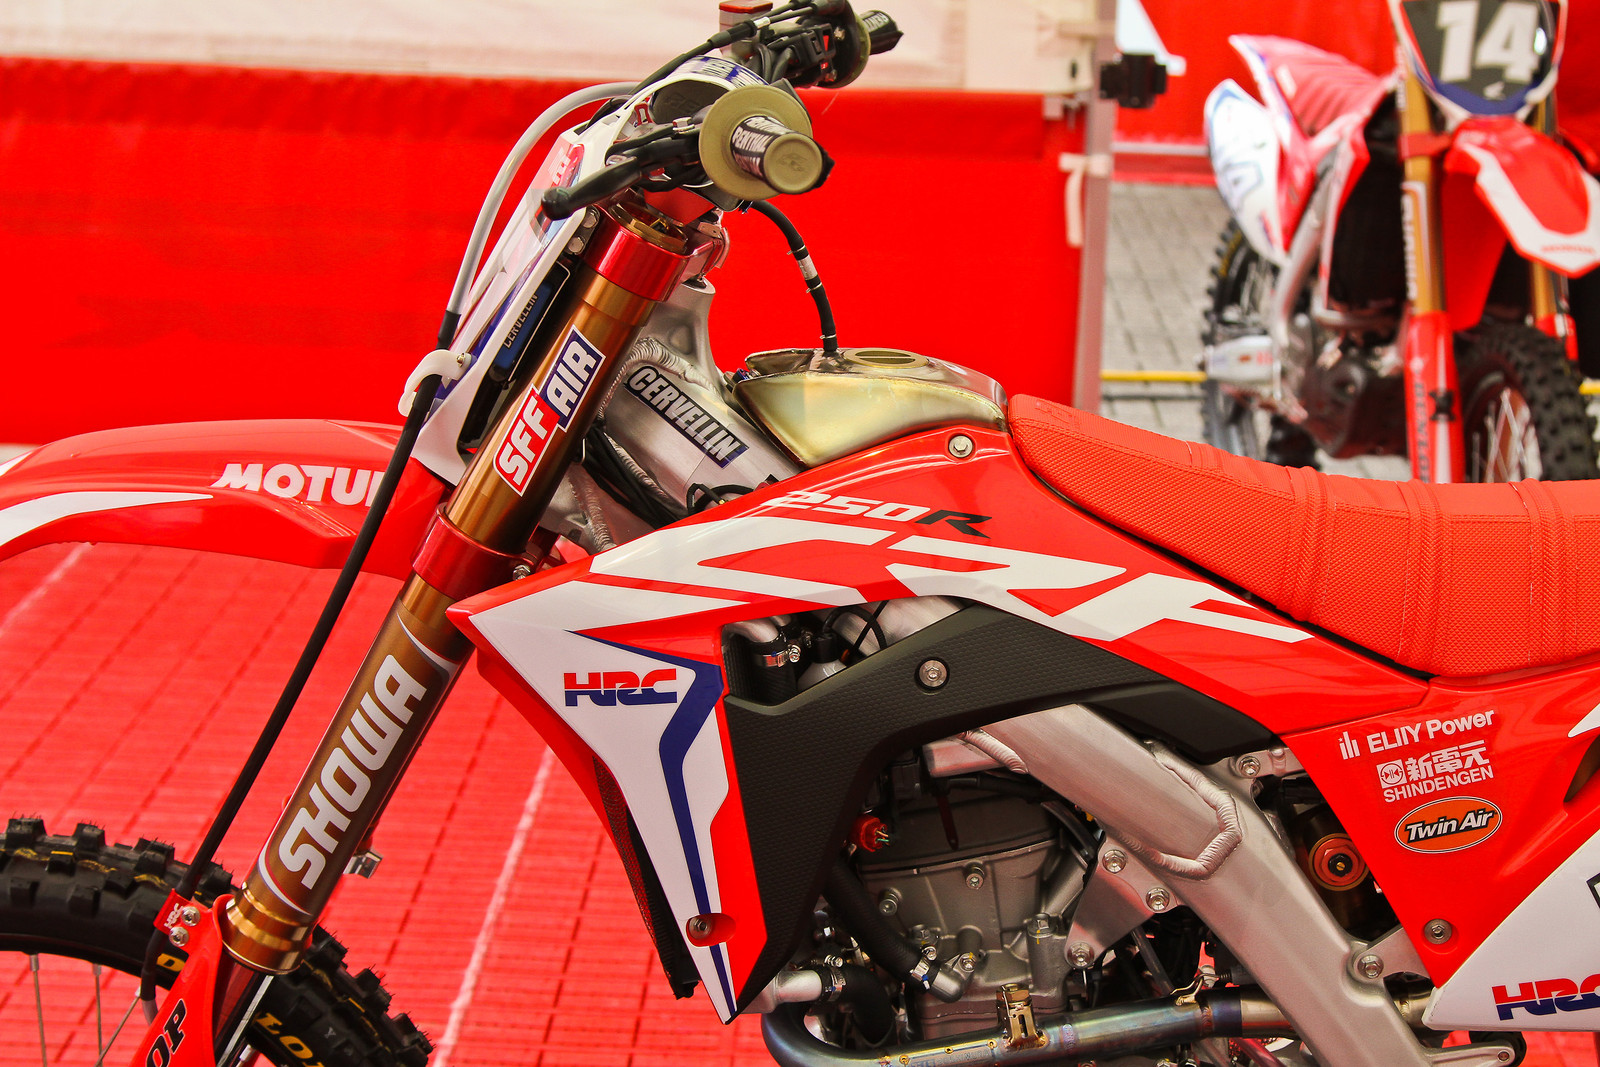 2018 Honda CRF250RW - Showa SFF TAC Air Forks - ayearinmx - Motocross Pictures - Vital MX